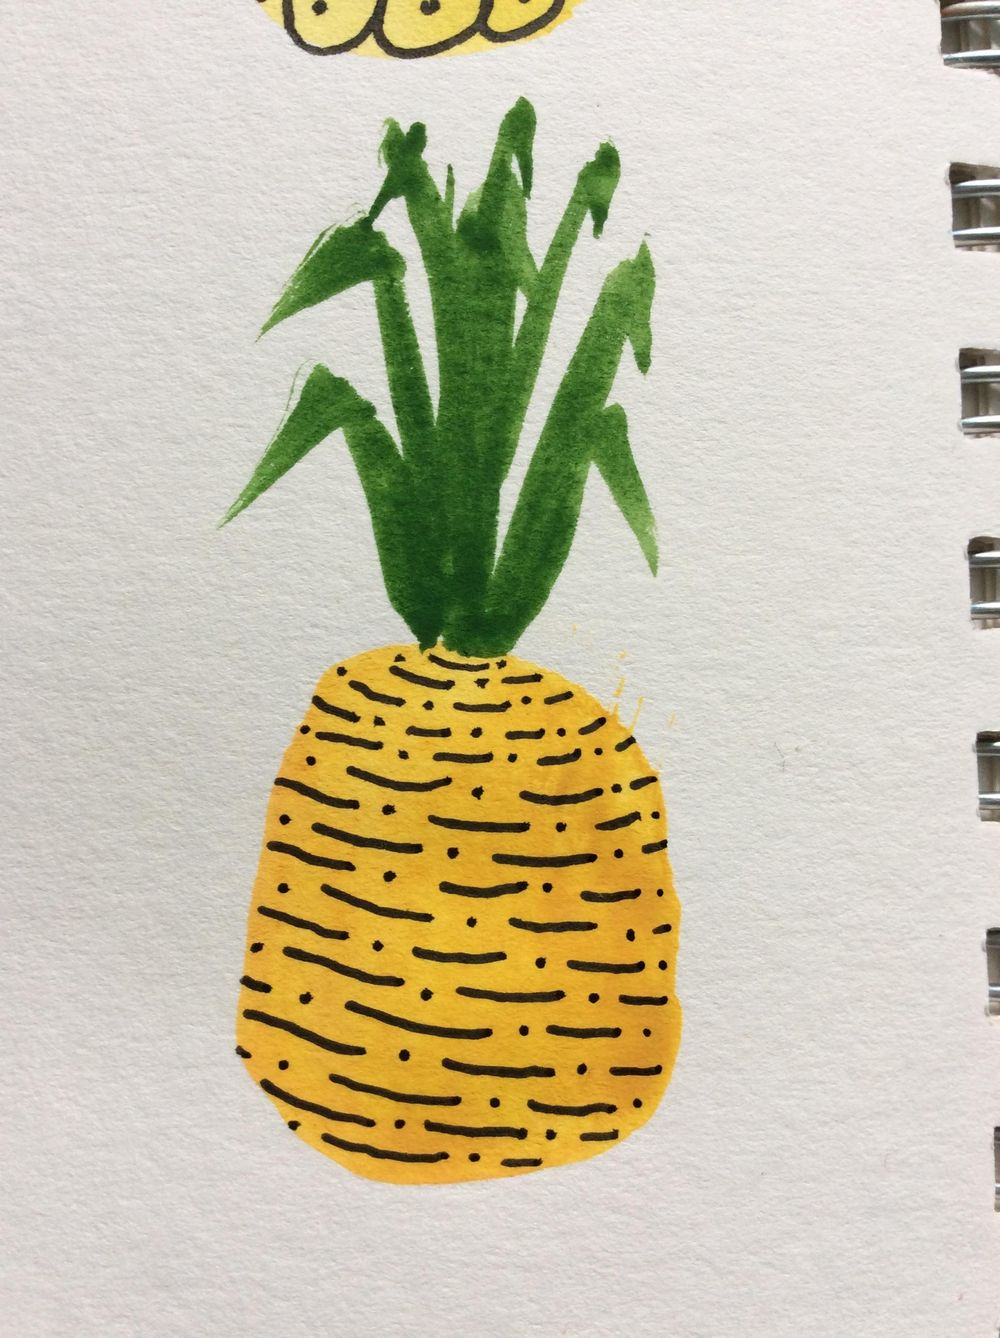 Pretty Patterned Pineapples - image 3 - student project